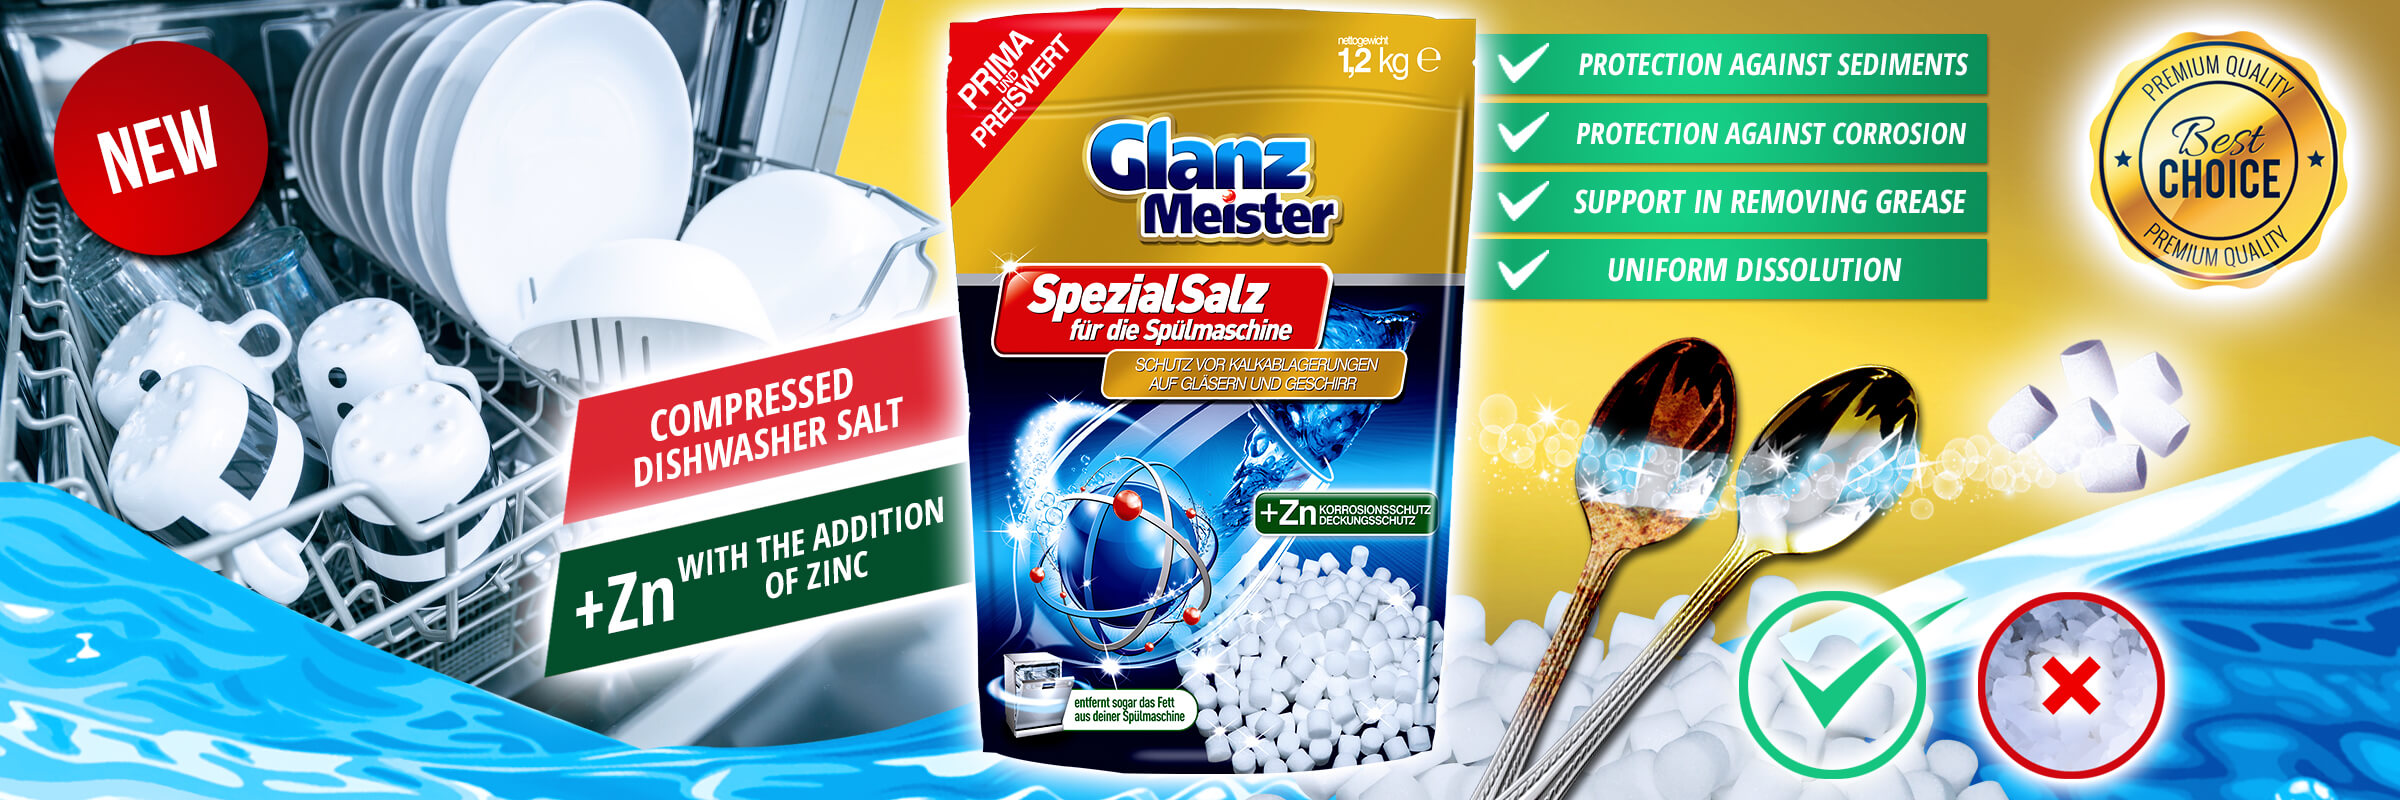 GlanzMeister compressed dishwasher salt